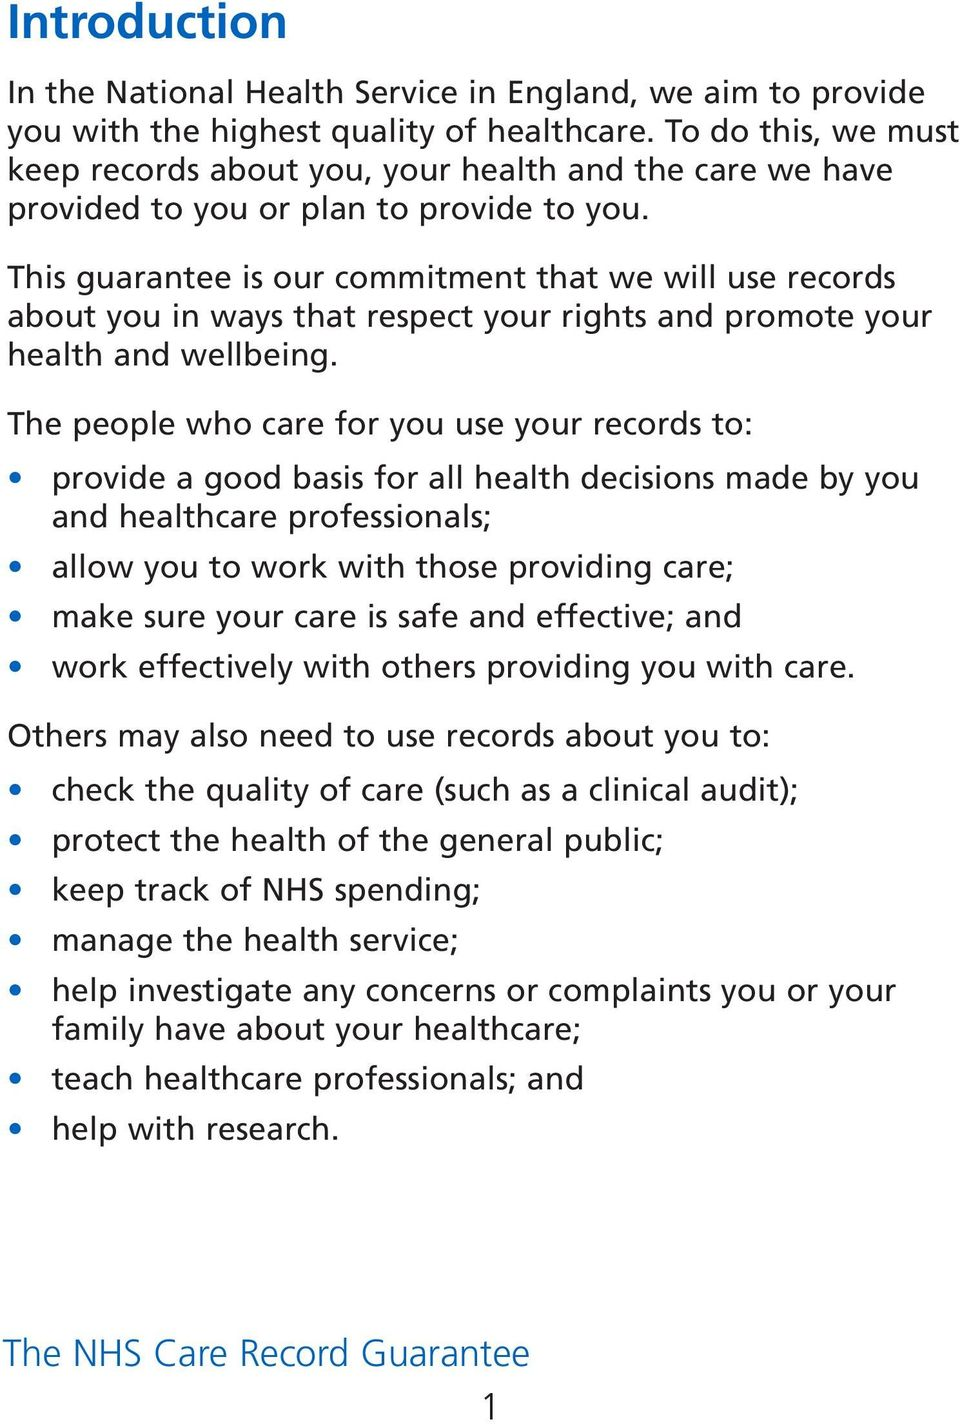 This guarantee is our commitment that we will use records about you in ways that respect your rights and promote your health and wellbeing.